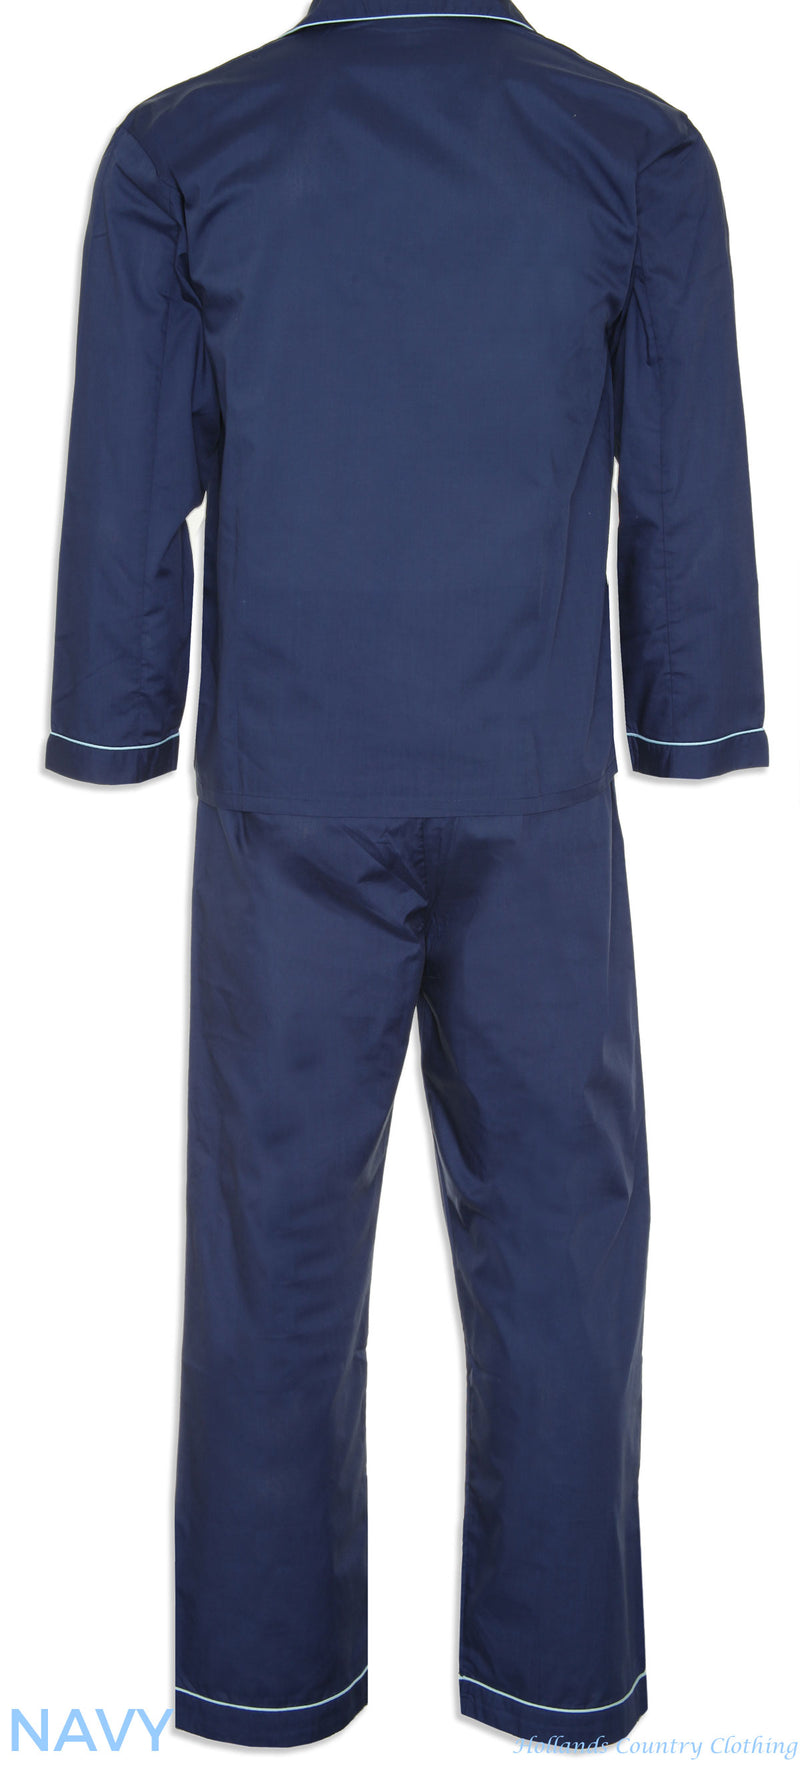 Look forward to a great night's sleep in crisp Oxford PJ's with contrast colour piping navy